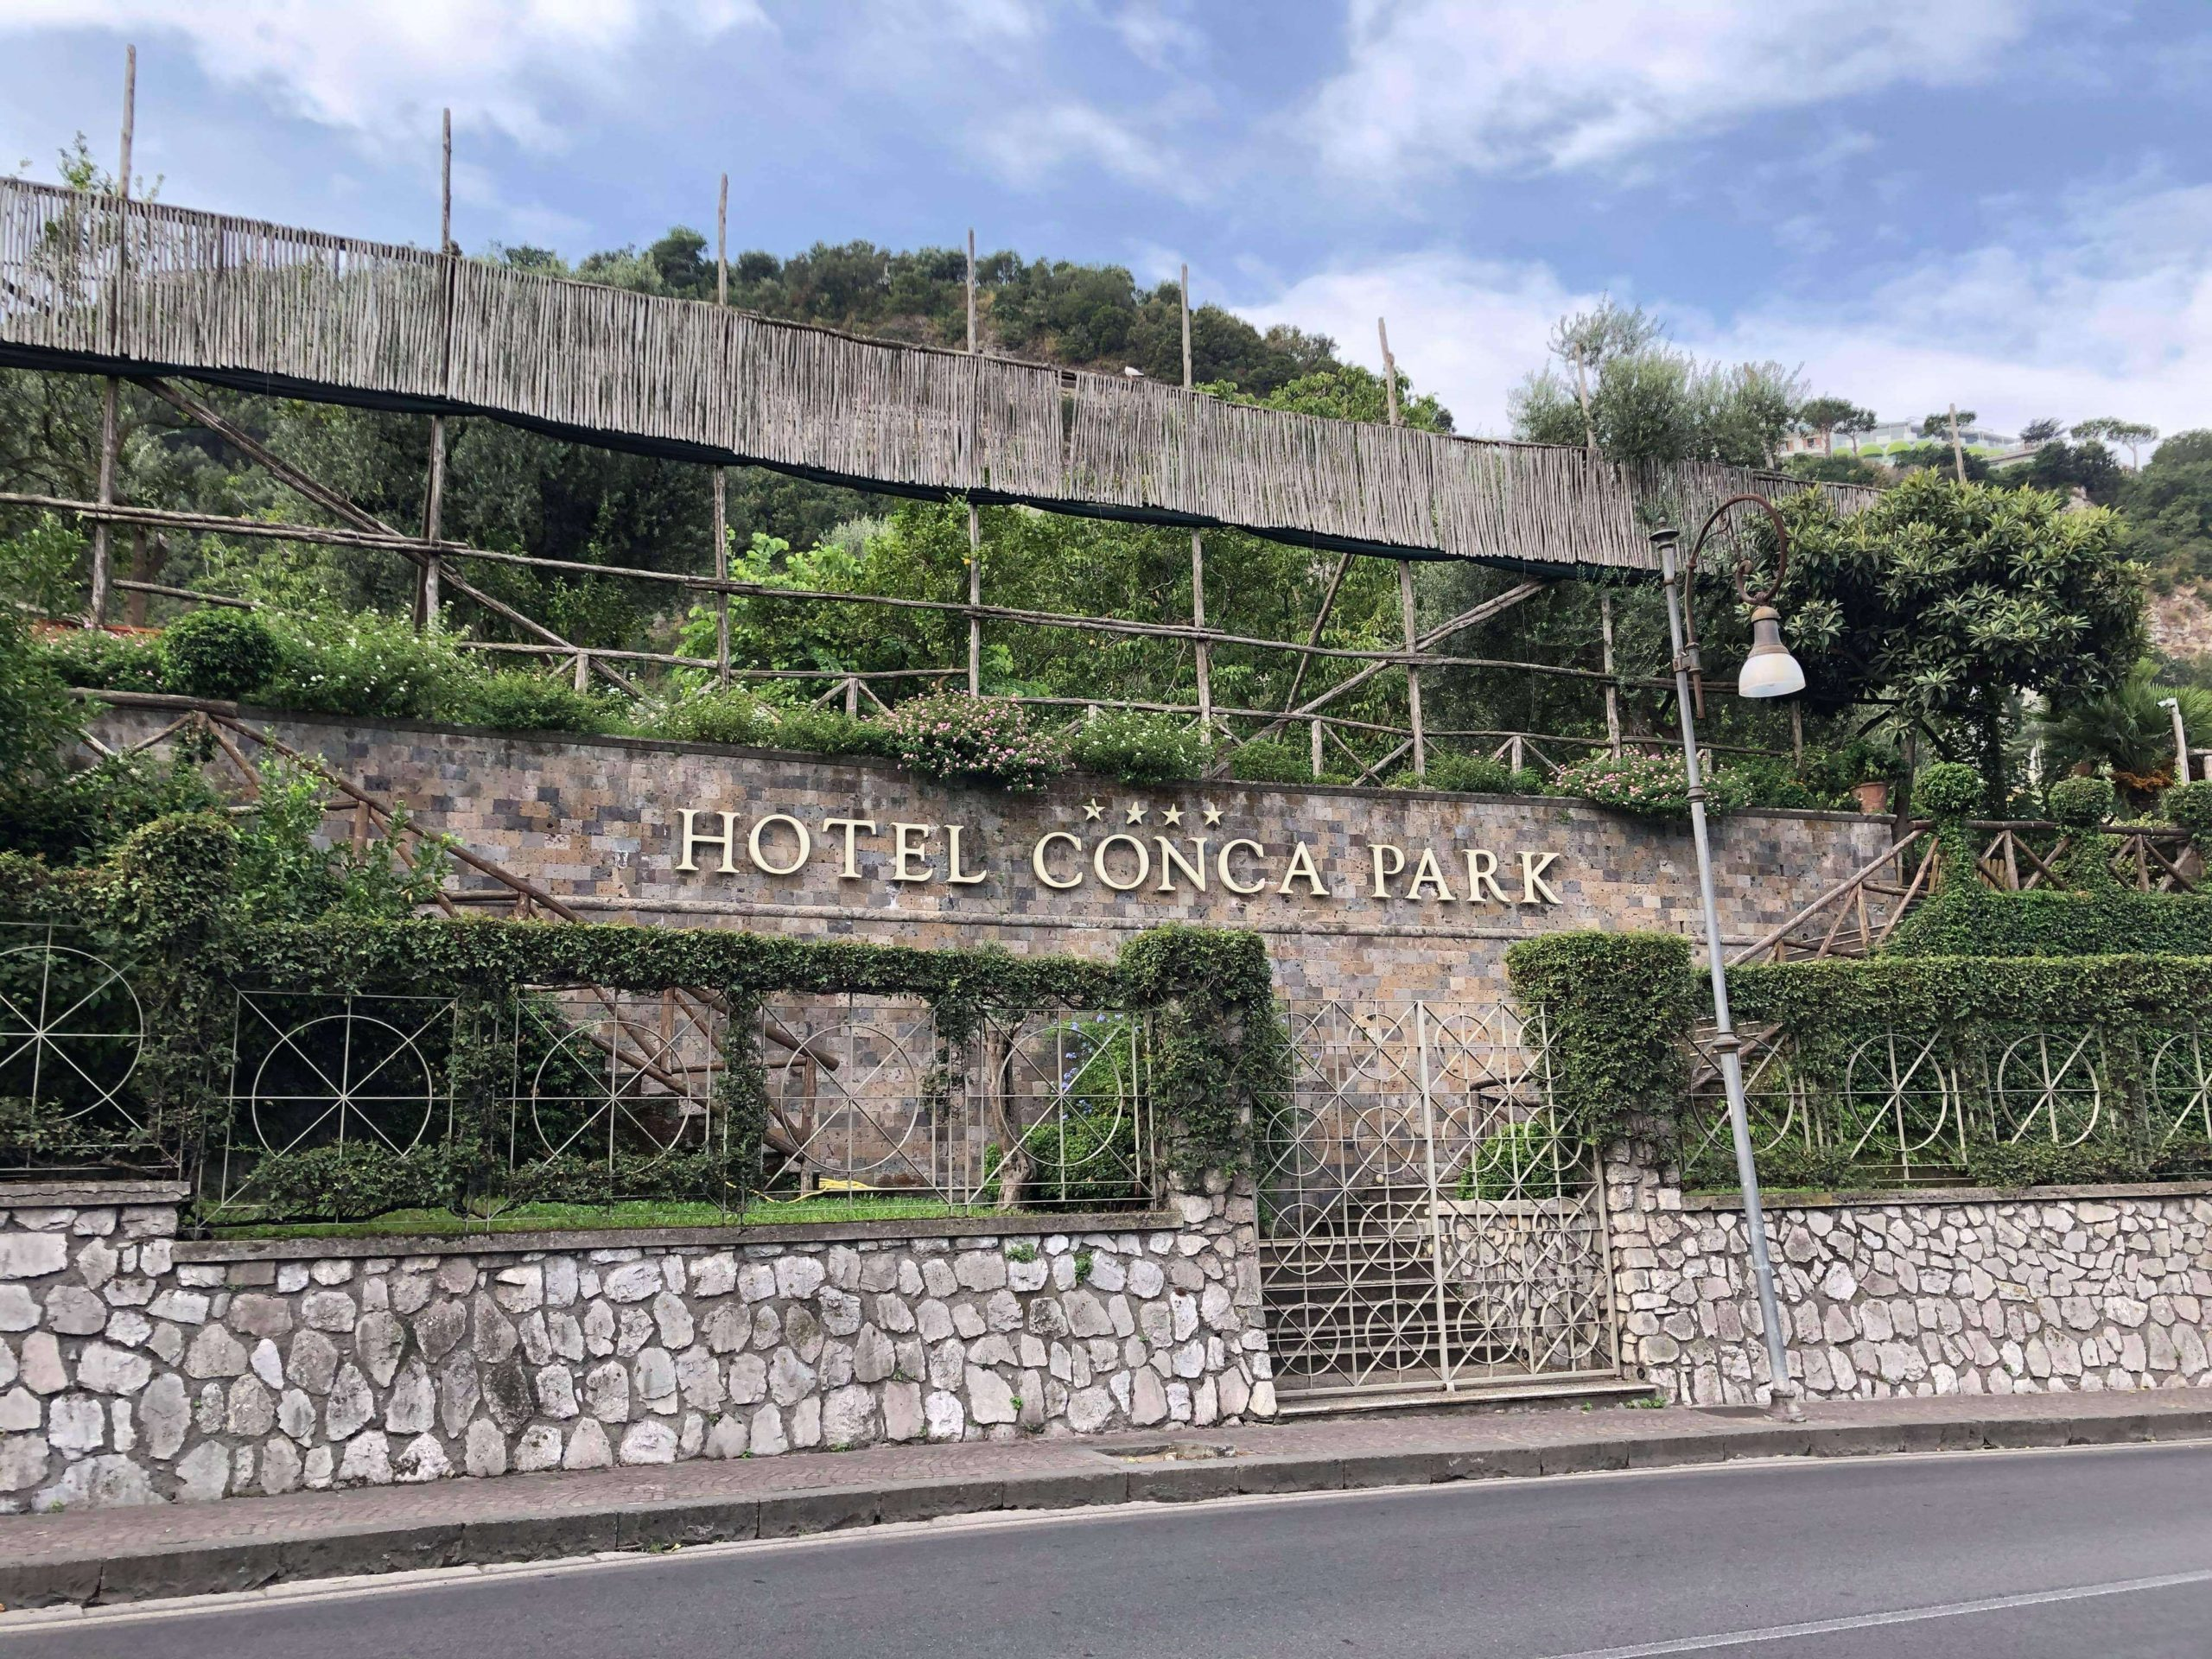 Things to do in Sorrento - Hotel conca park